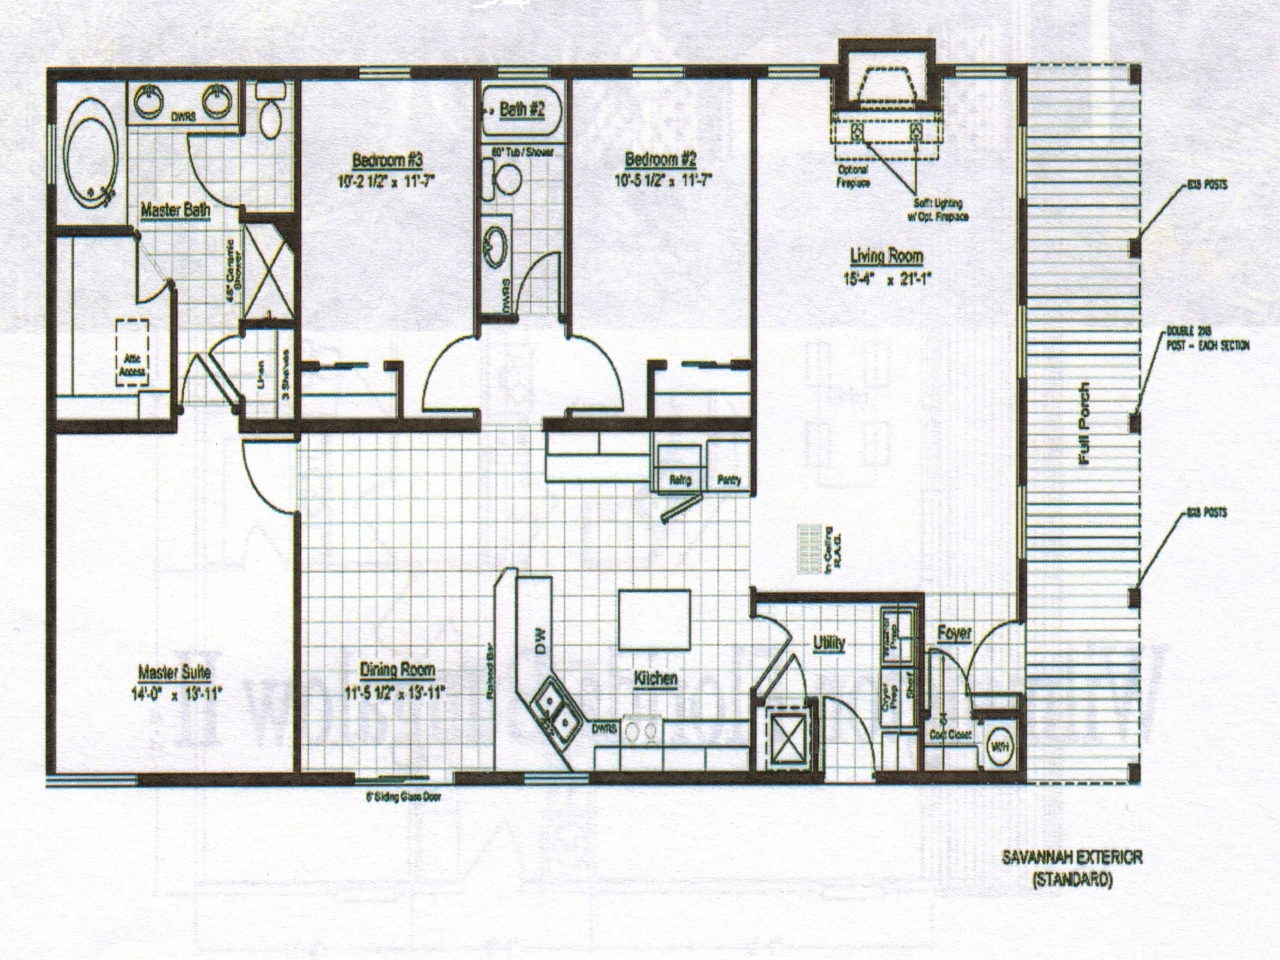 Bungalow home design floor plans bungalow house plans with for Bungalow floor plans canada